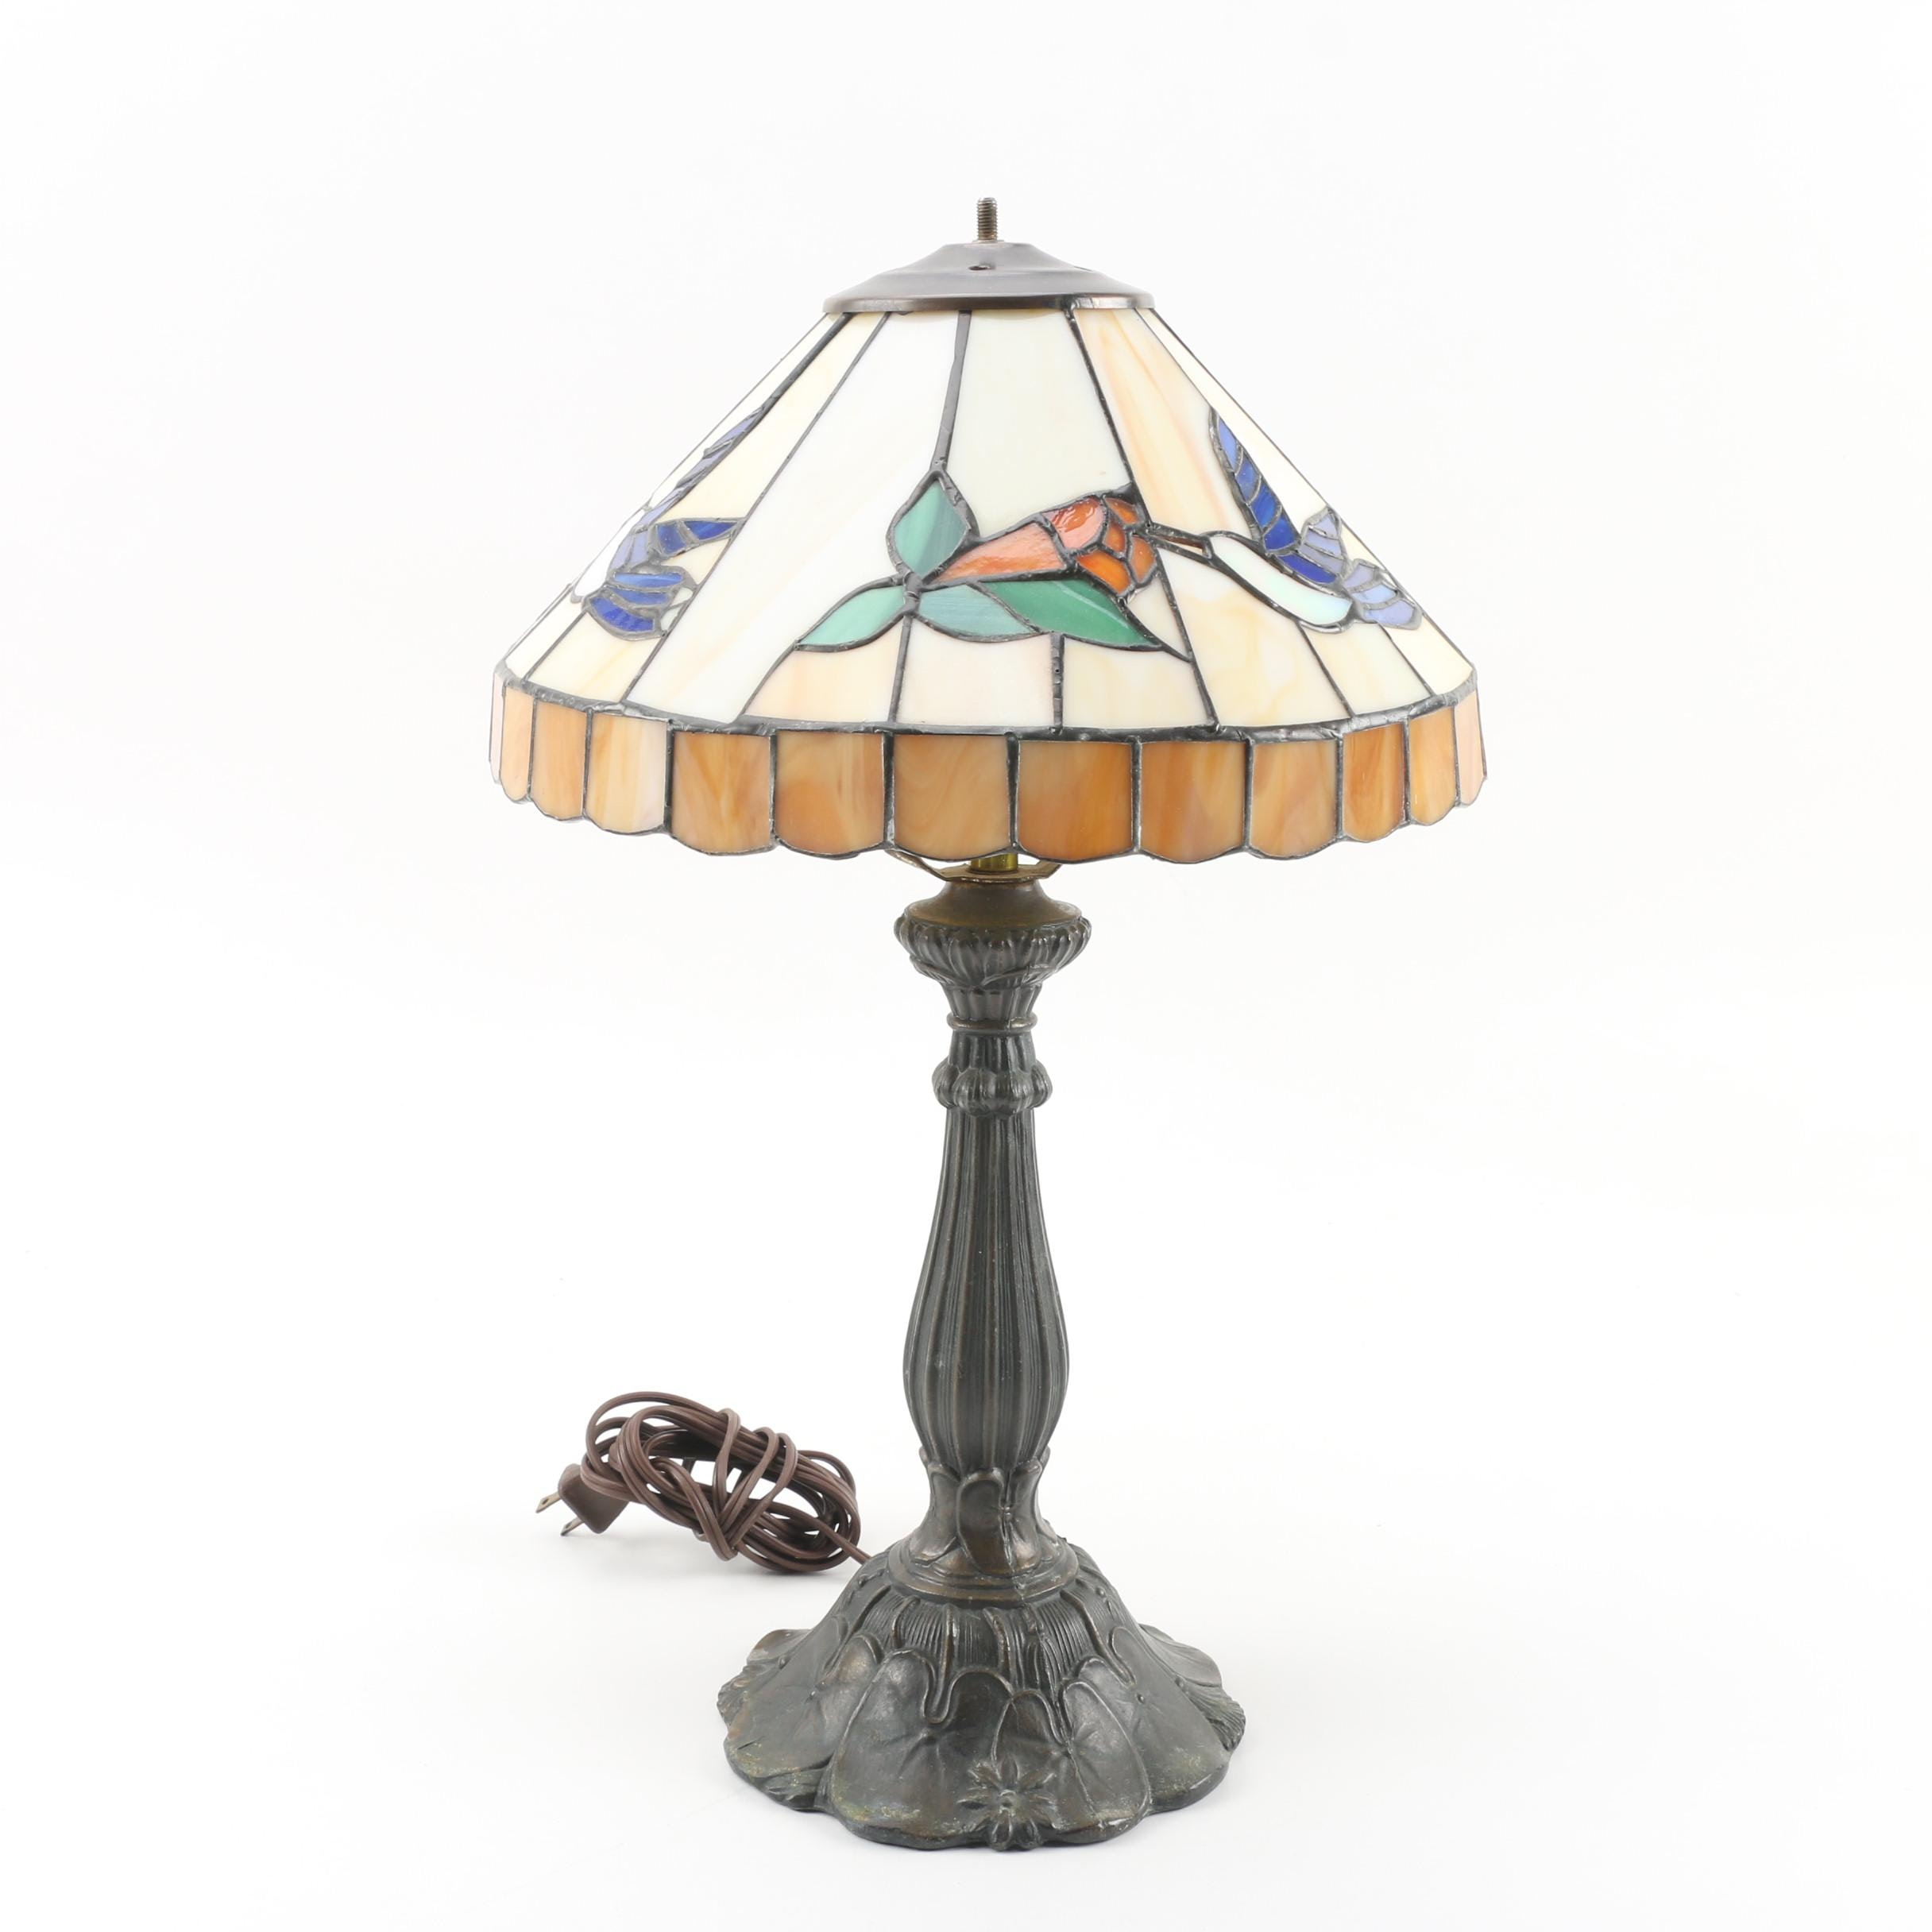 Cast Metal Table Lamp with Hummingbird and Flower Stained Glass Shade